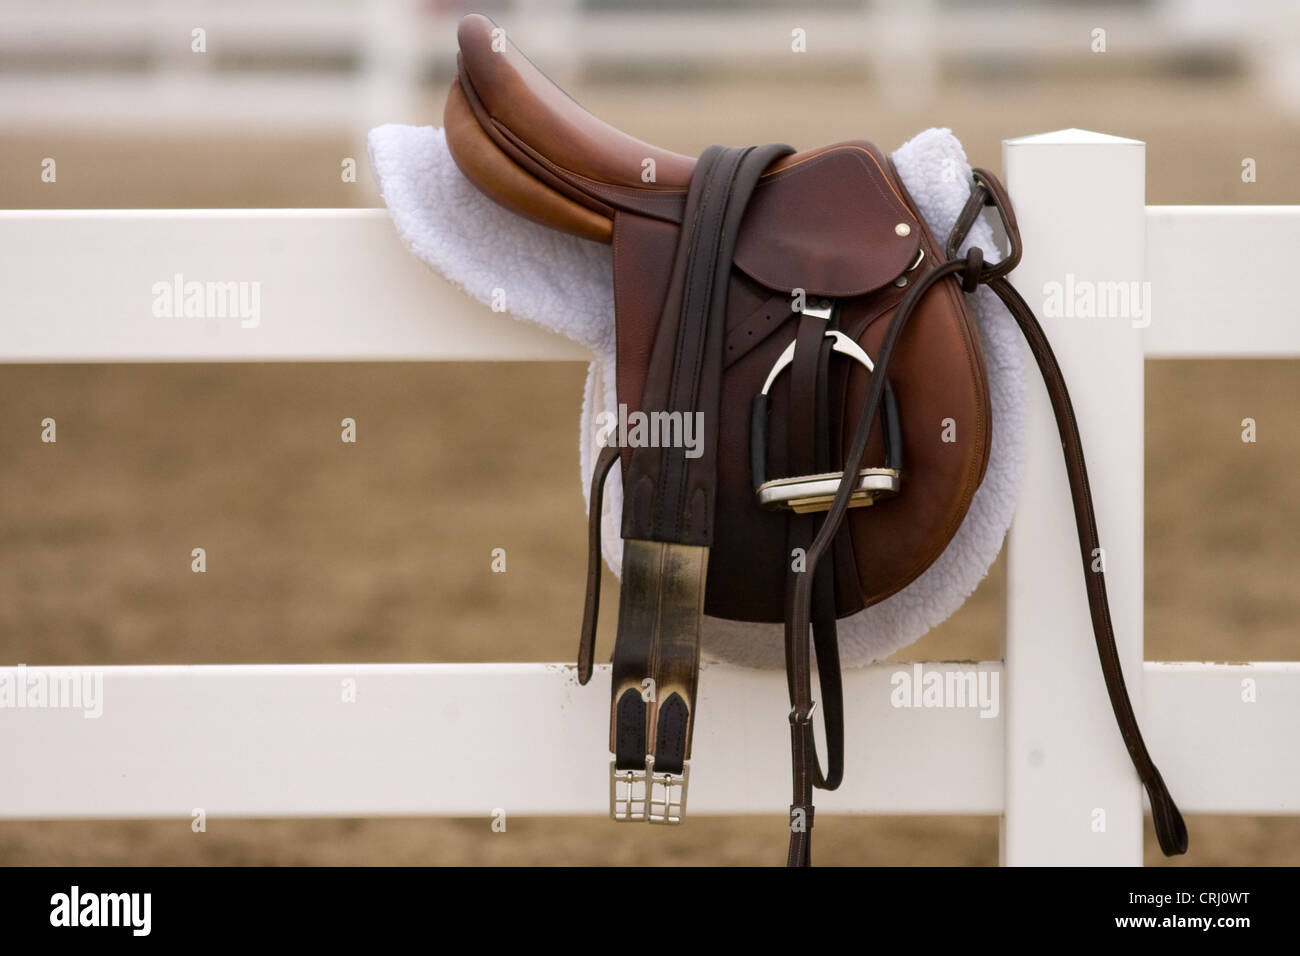 June 24, 2012  An English style saddle sits on a fence at a horse